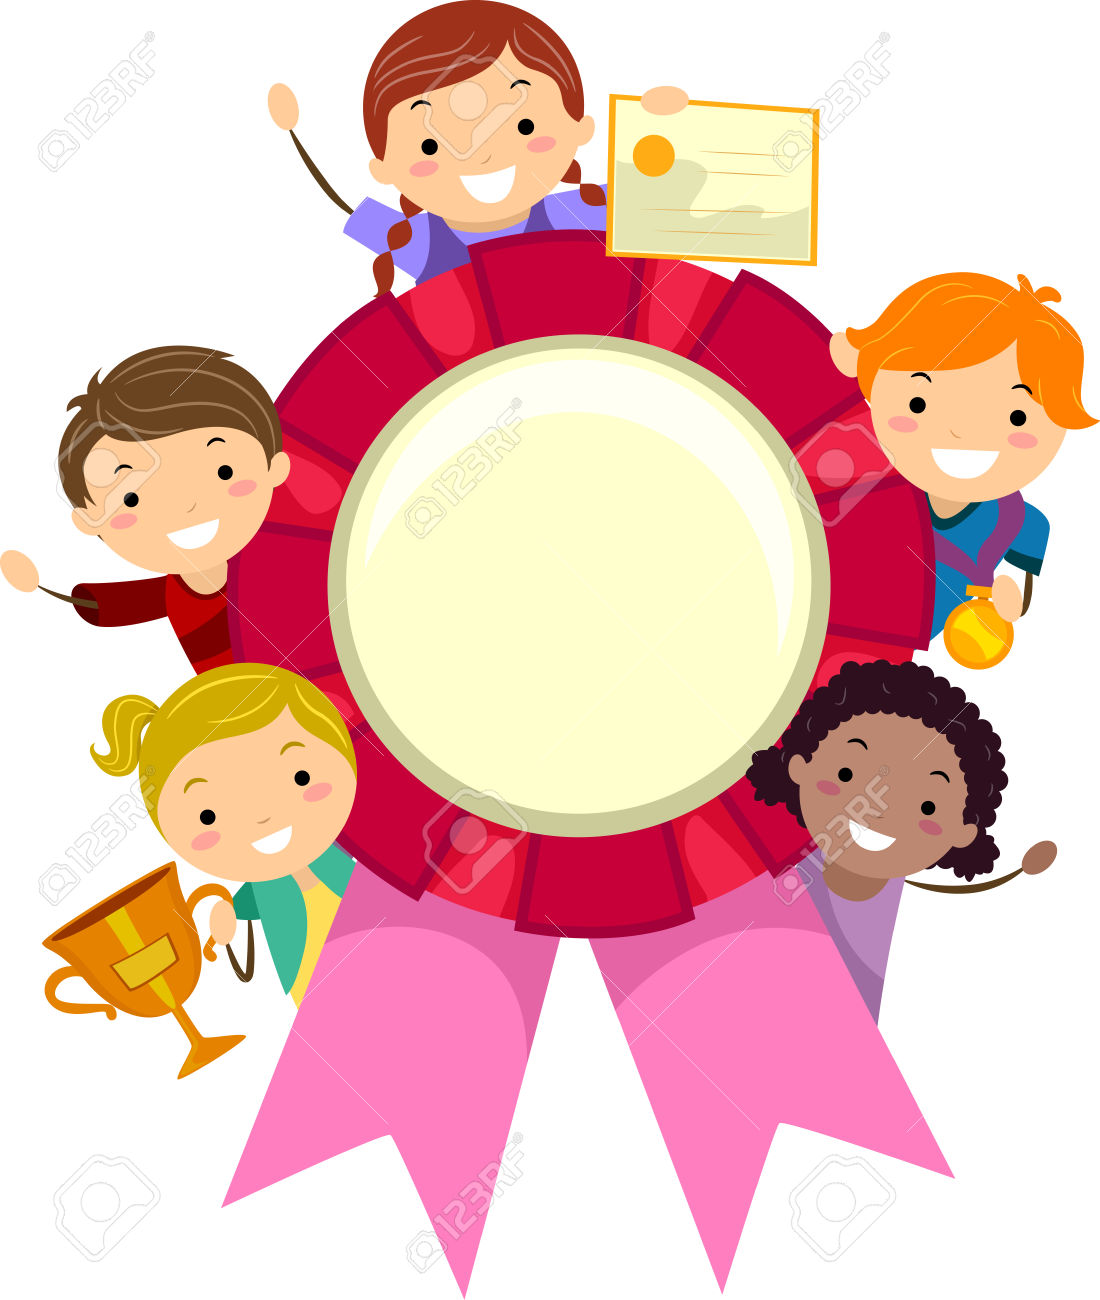 Recognition free download best. Awards clipart preschool